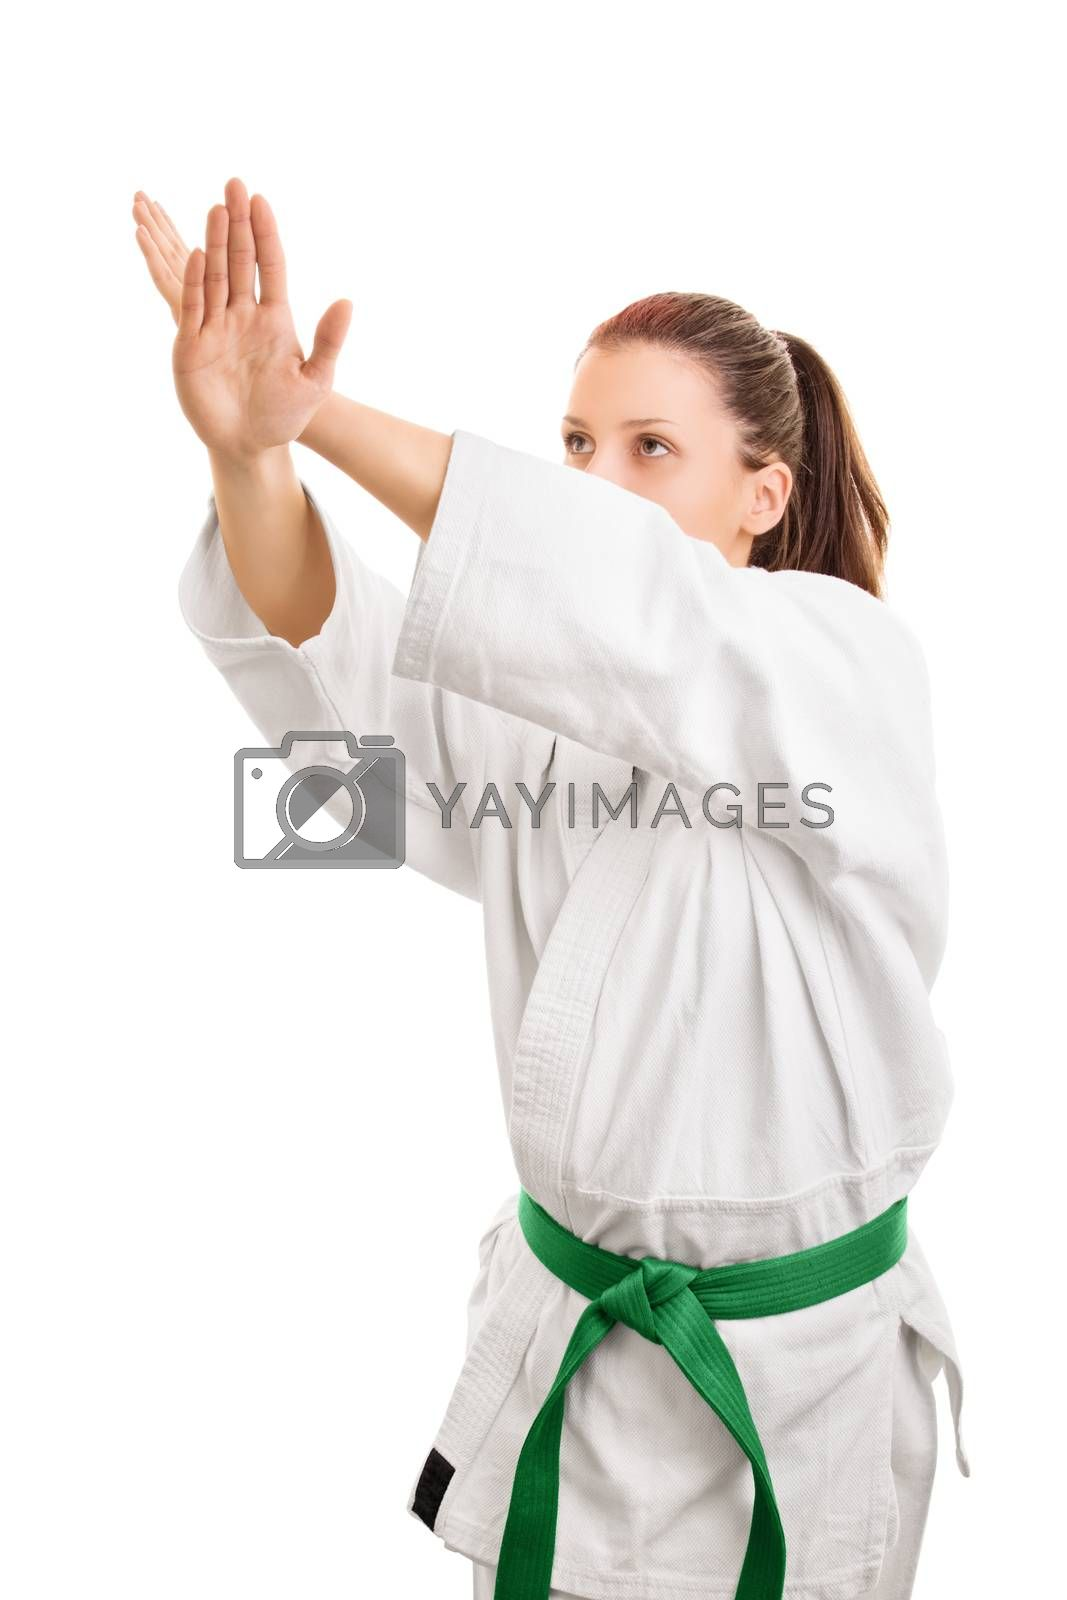 Block this way. Young girl wearing kimono with green belt in block stance, isolated on white background.